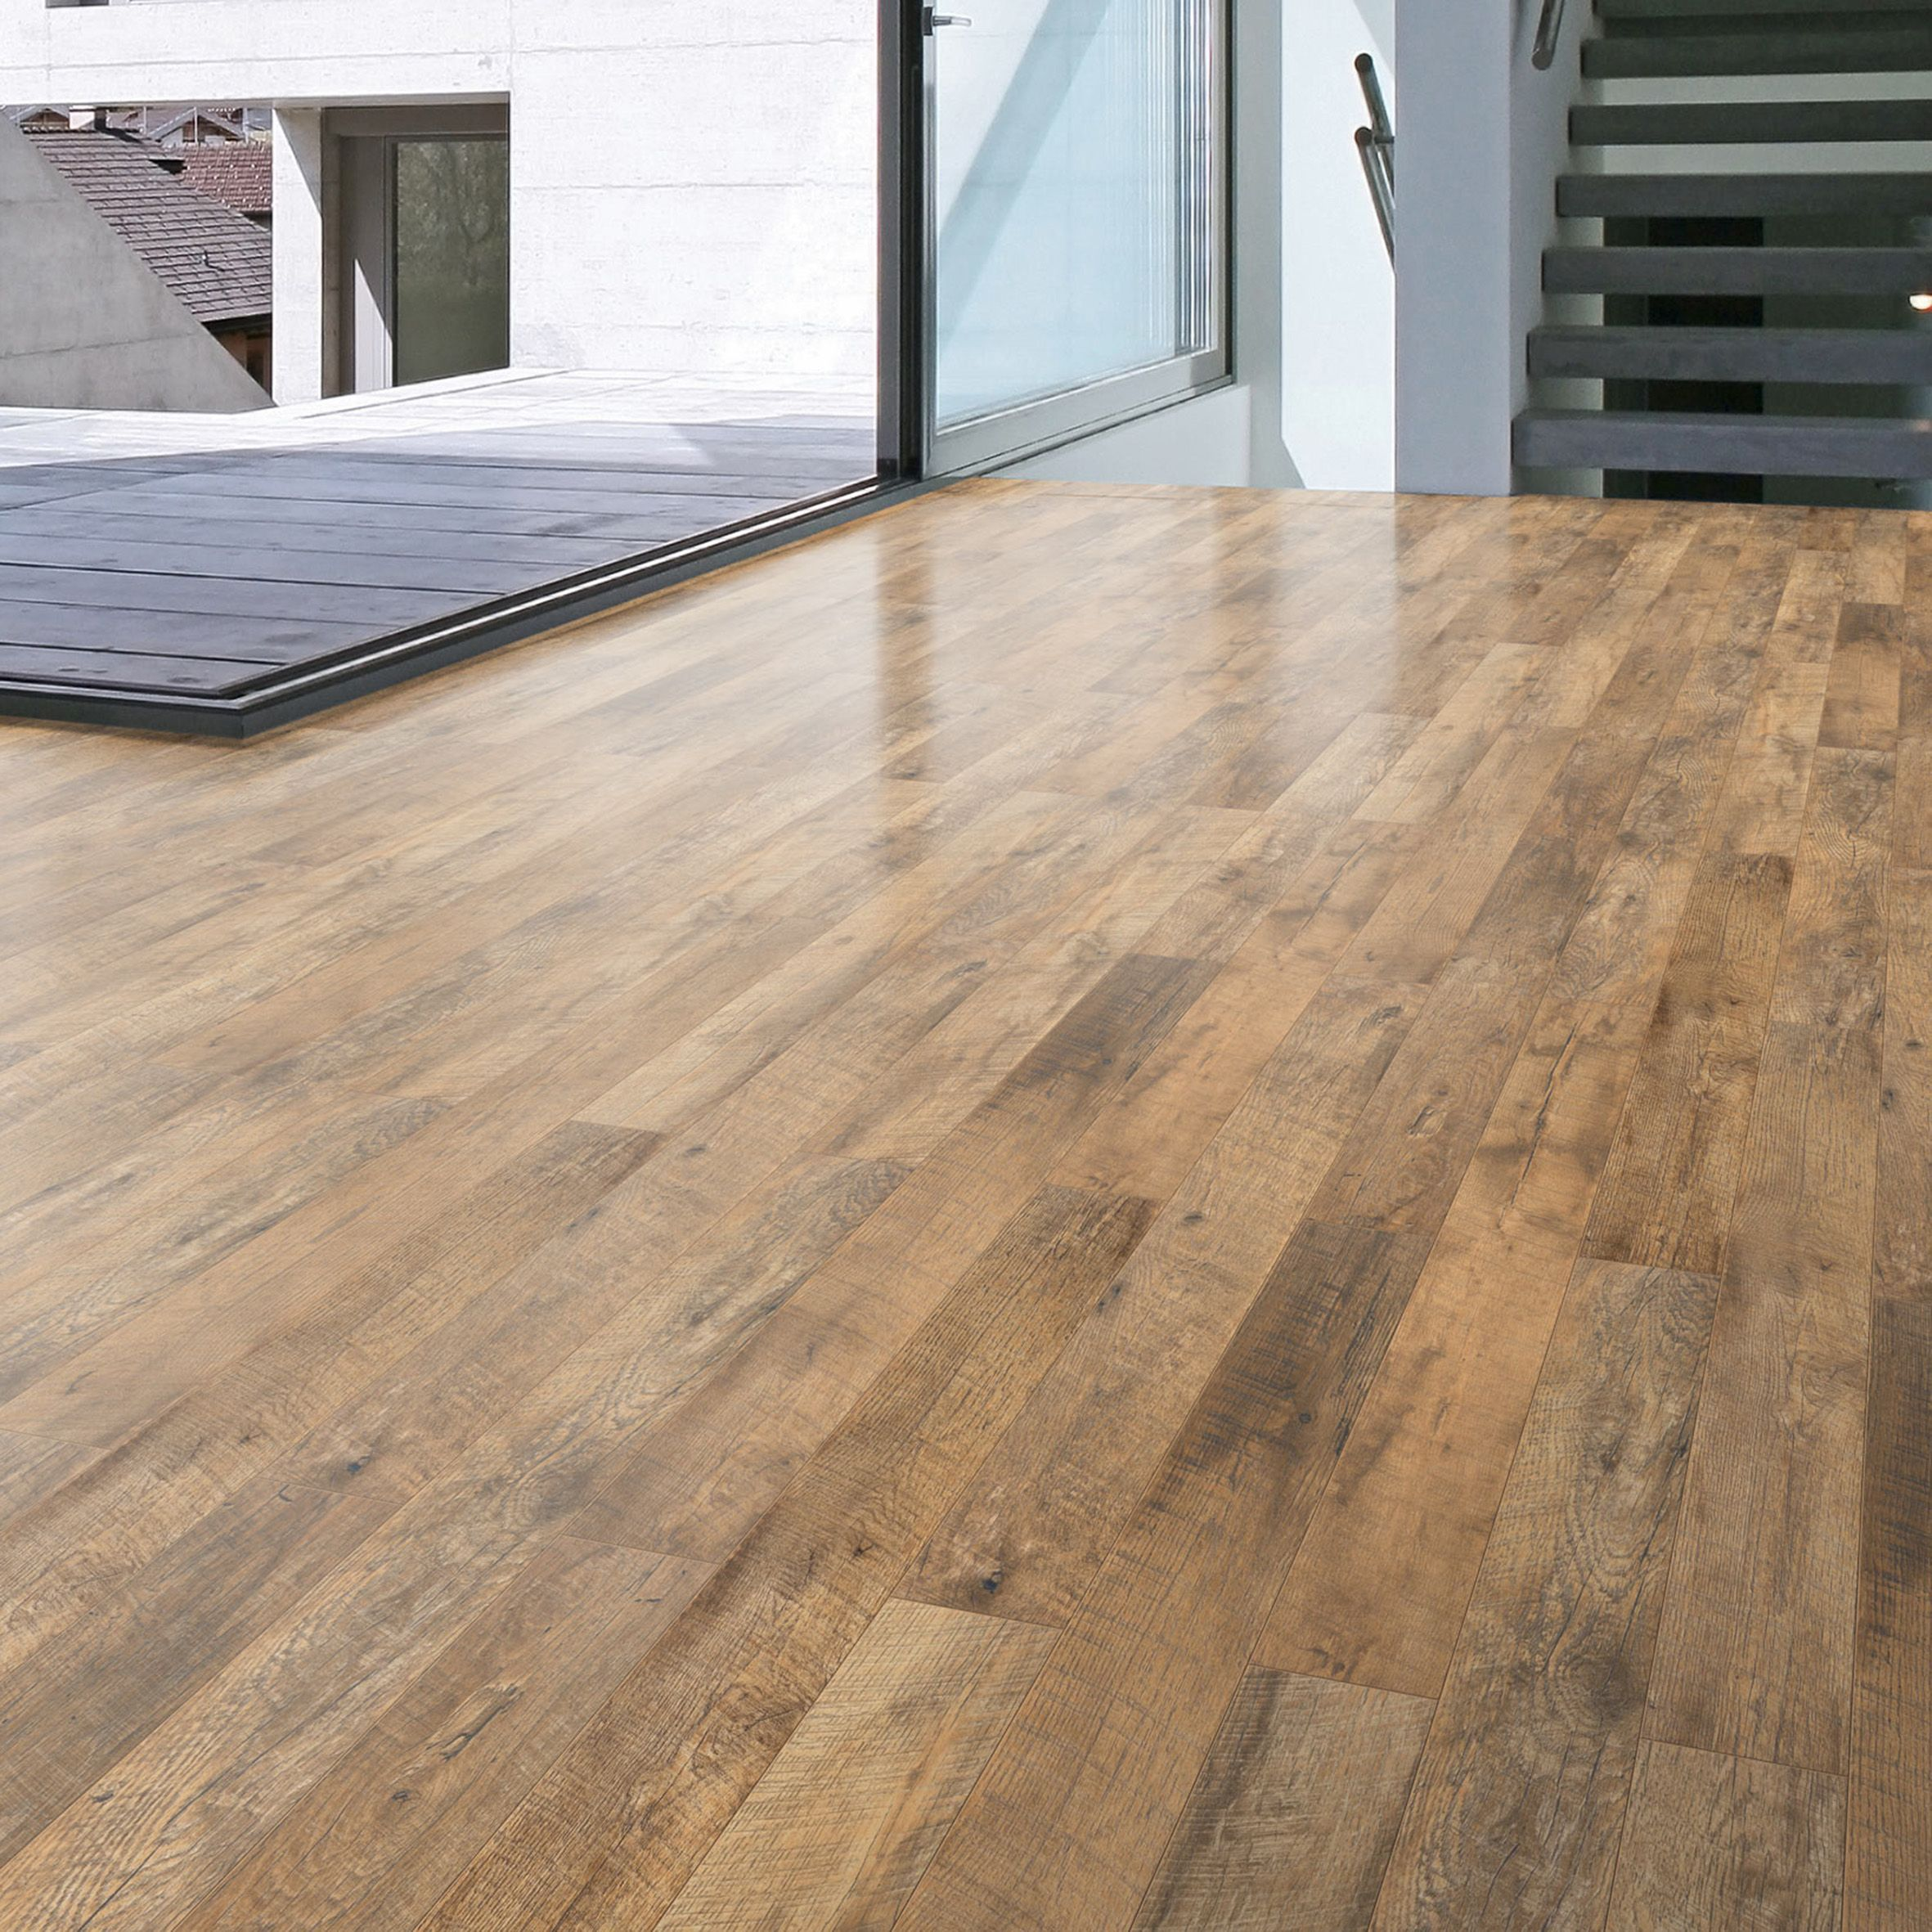 Guarcino Reclaimed Oak Effect Laminate Flooring 1 64 M 178